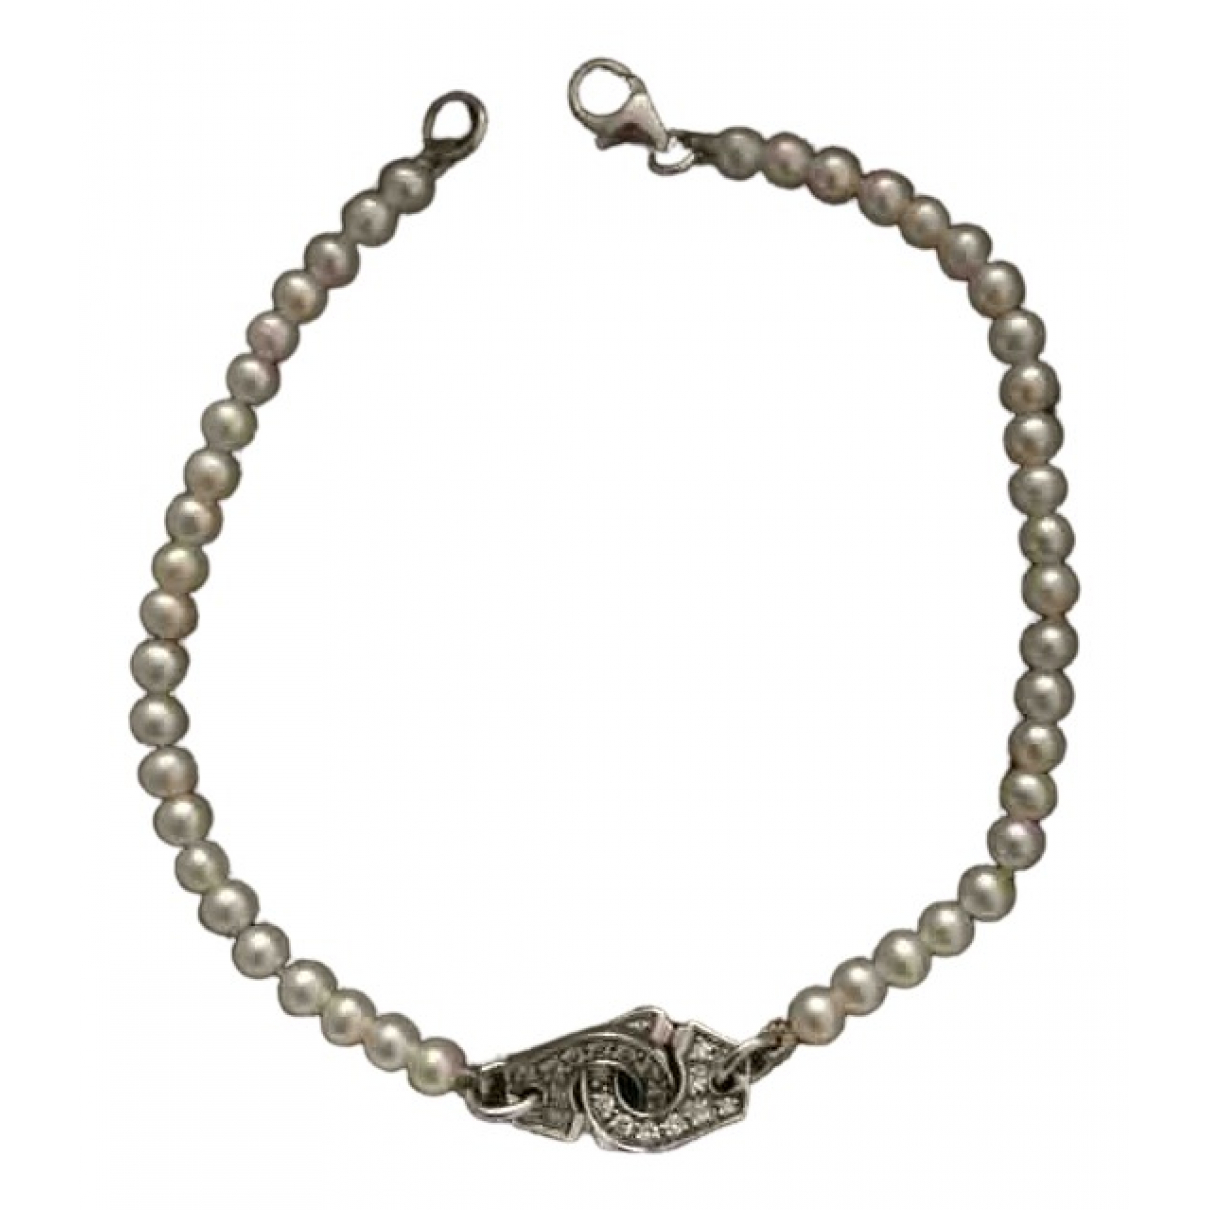 Dinh Van Menottes  Armband in  Weiss Weissgold